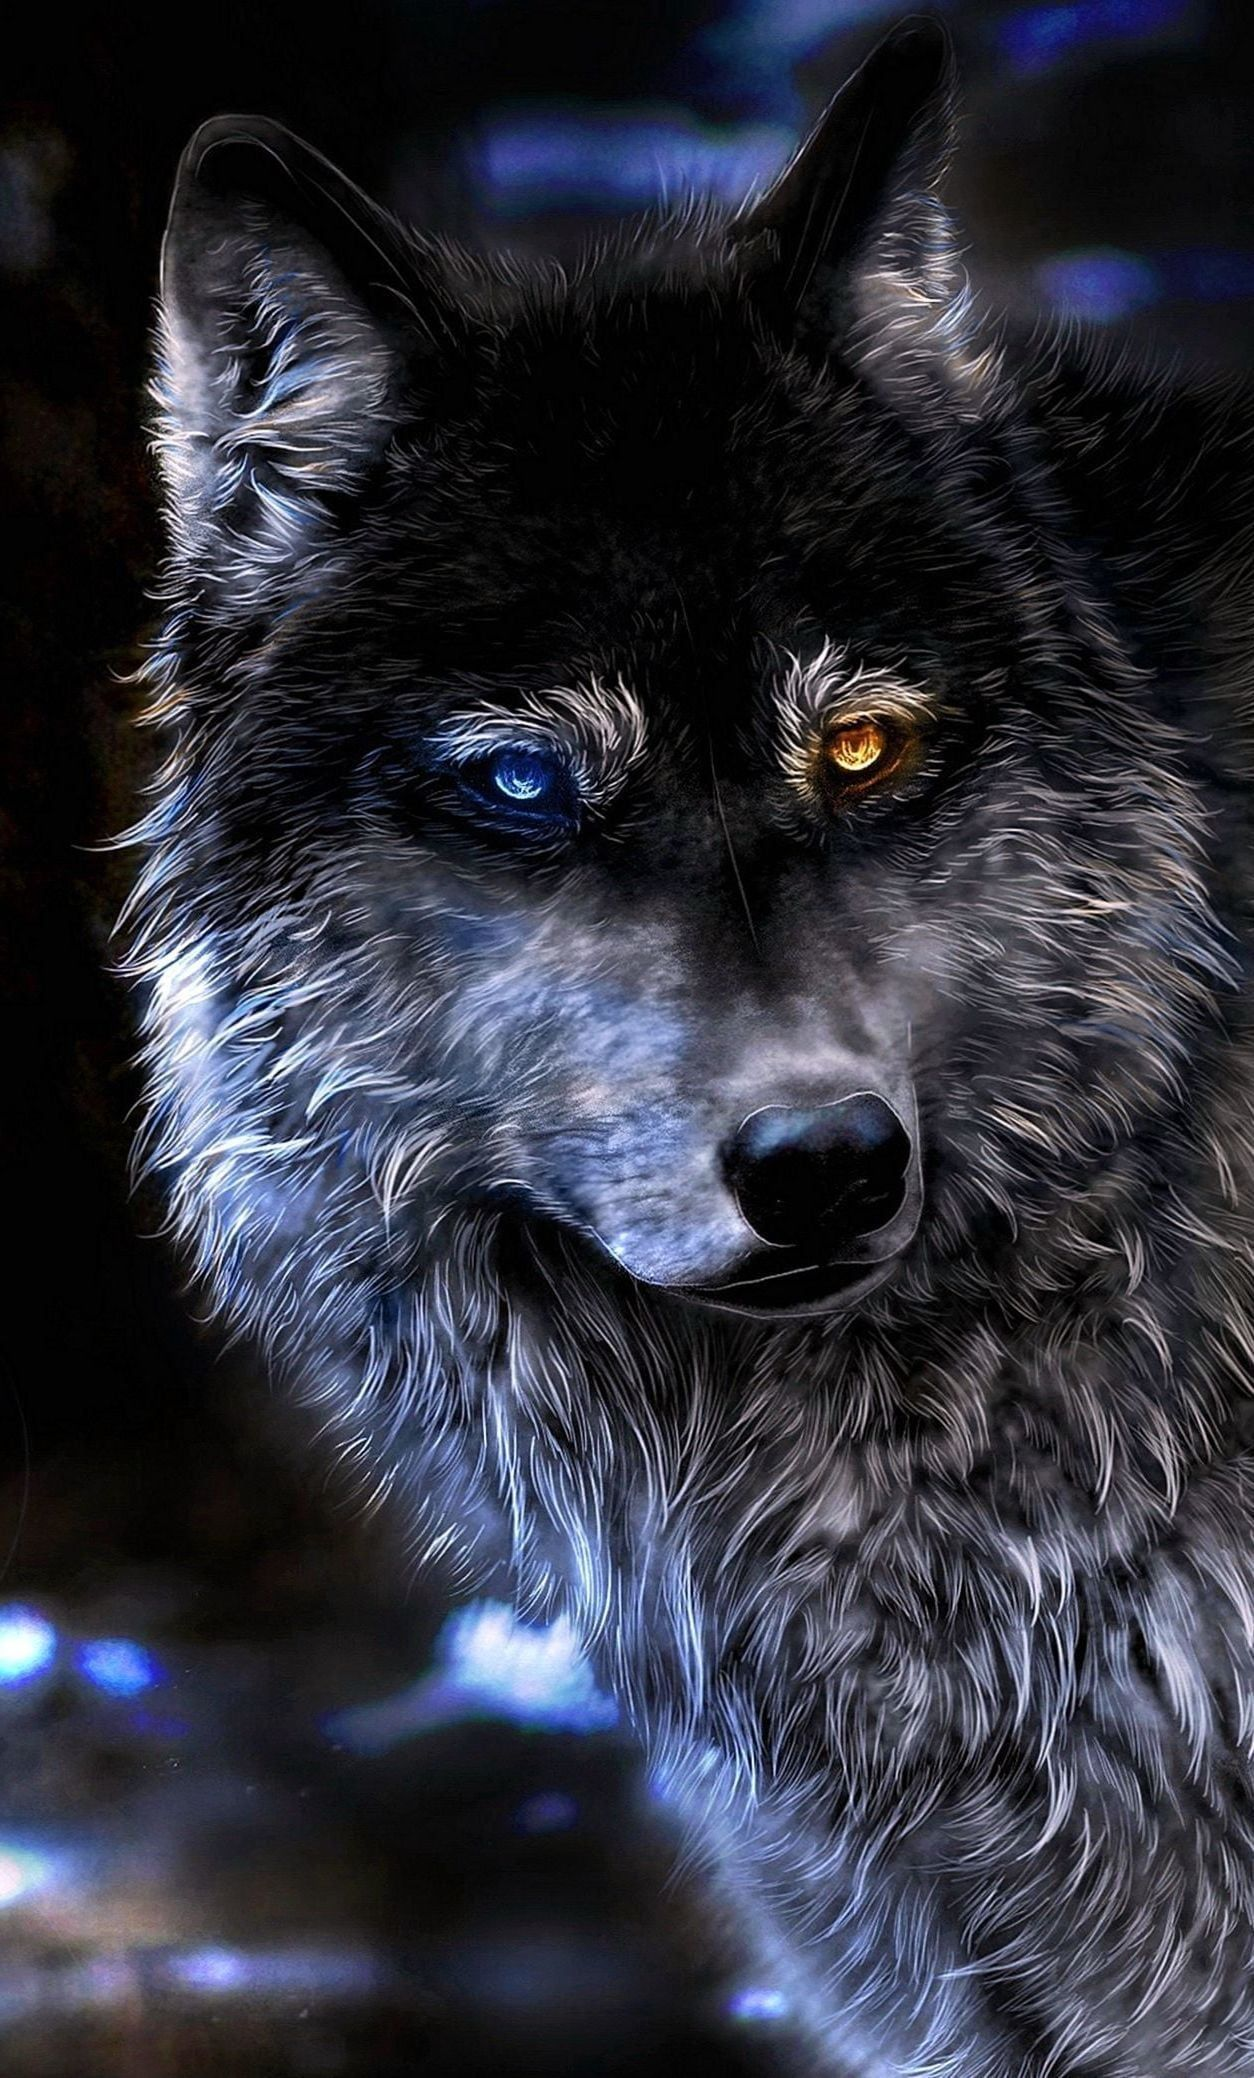 Angry Wolf Wallpapers 4k Iphone Angry Wolf Wallpapers 4k Iphone Iphone Wallpaper Wolf Wolf Wallpaper Iphone Wallpaper For Guys